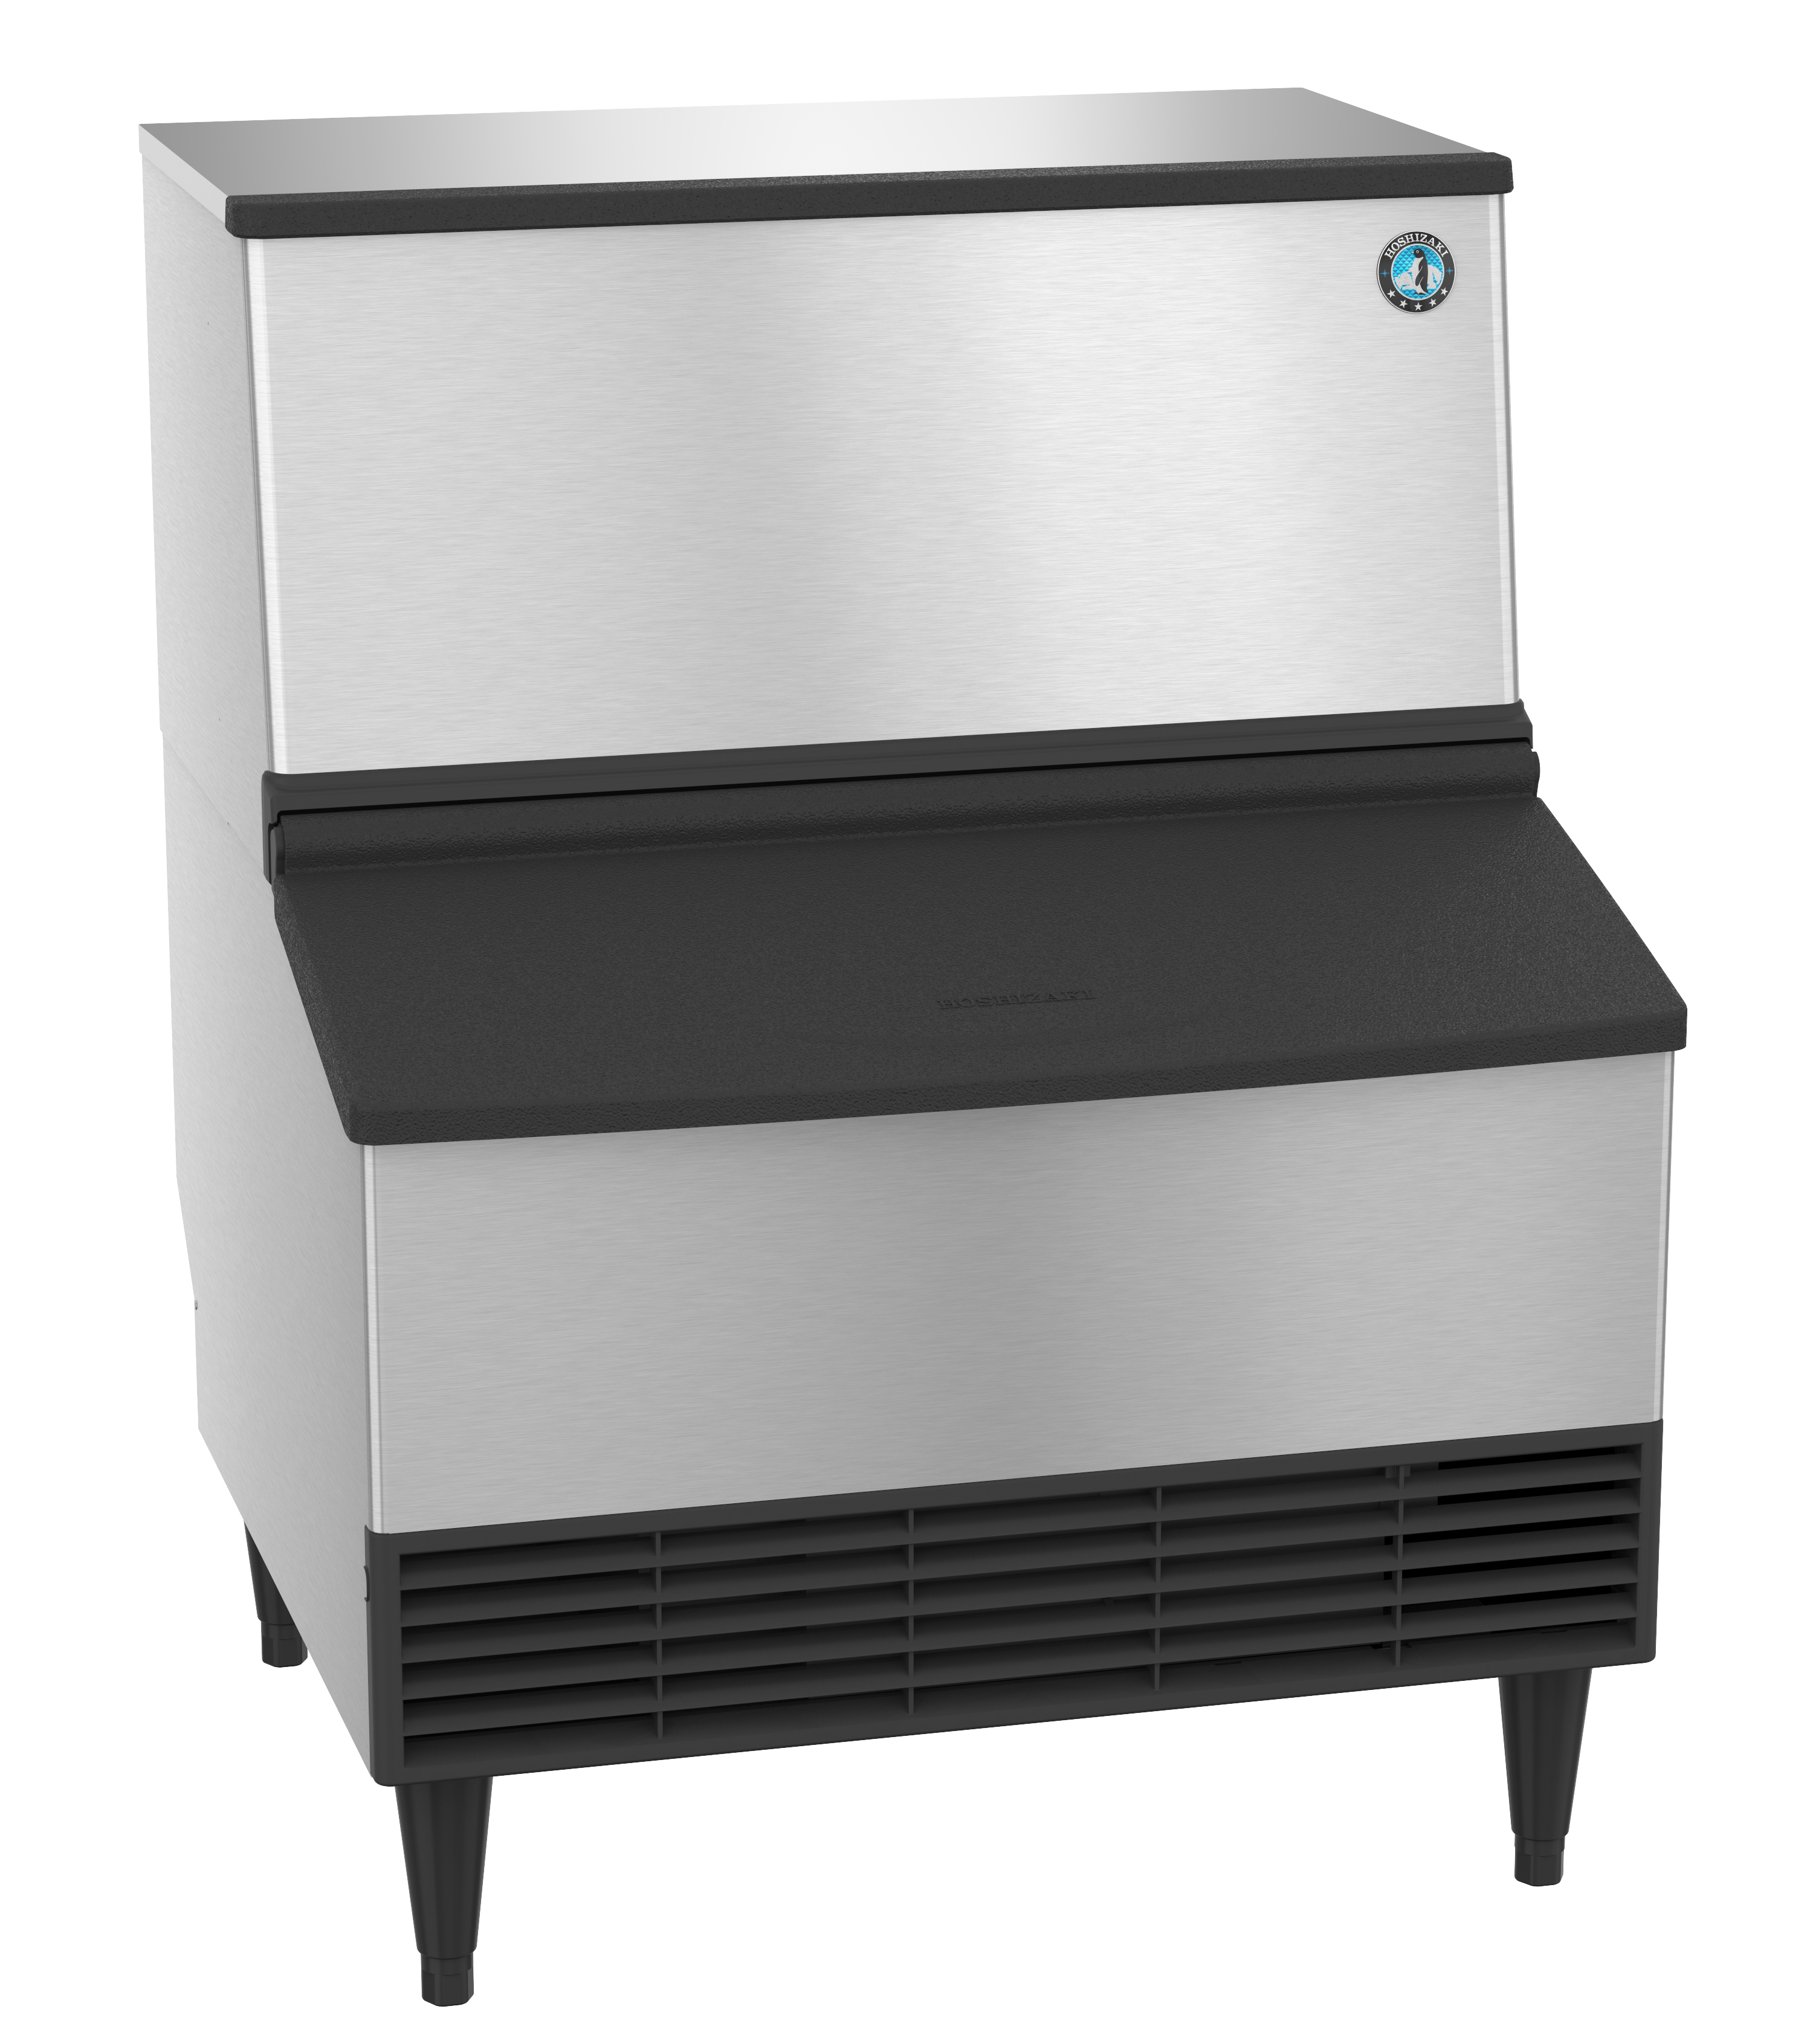 Hoshizaki KM 300BWJ Ice Maker Water cooled Self Contained Built